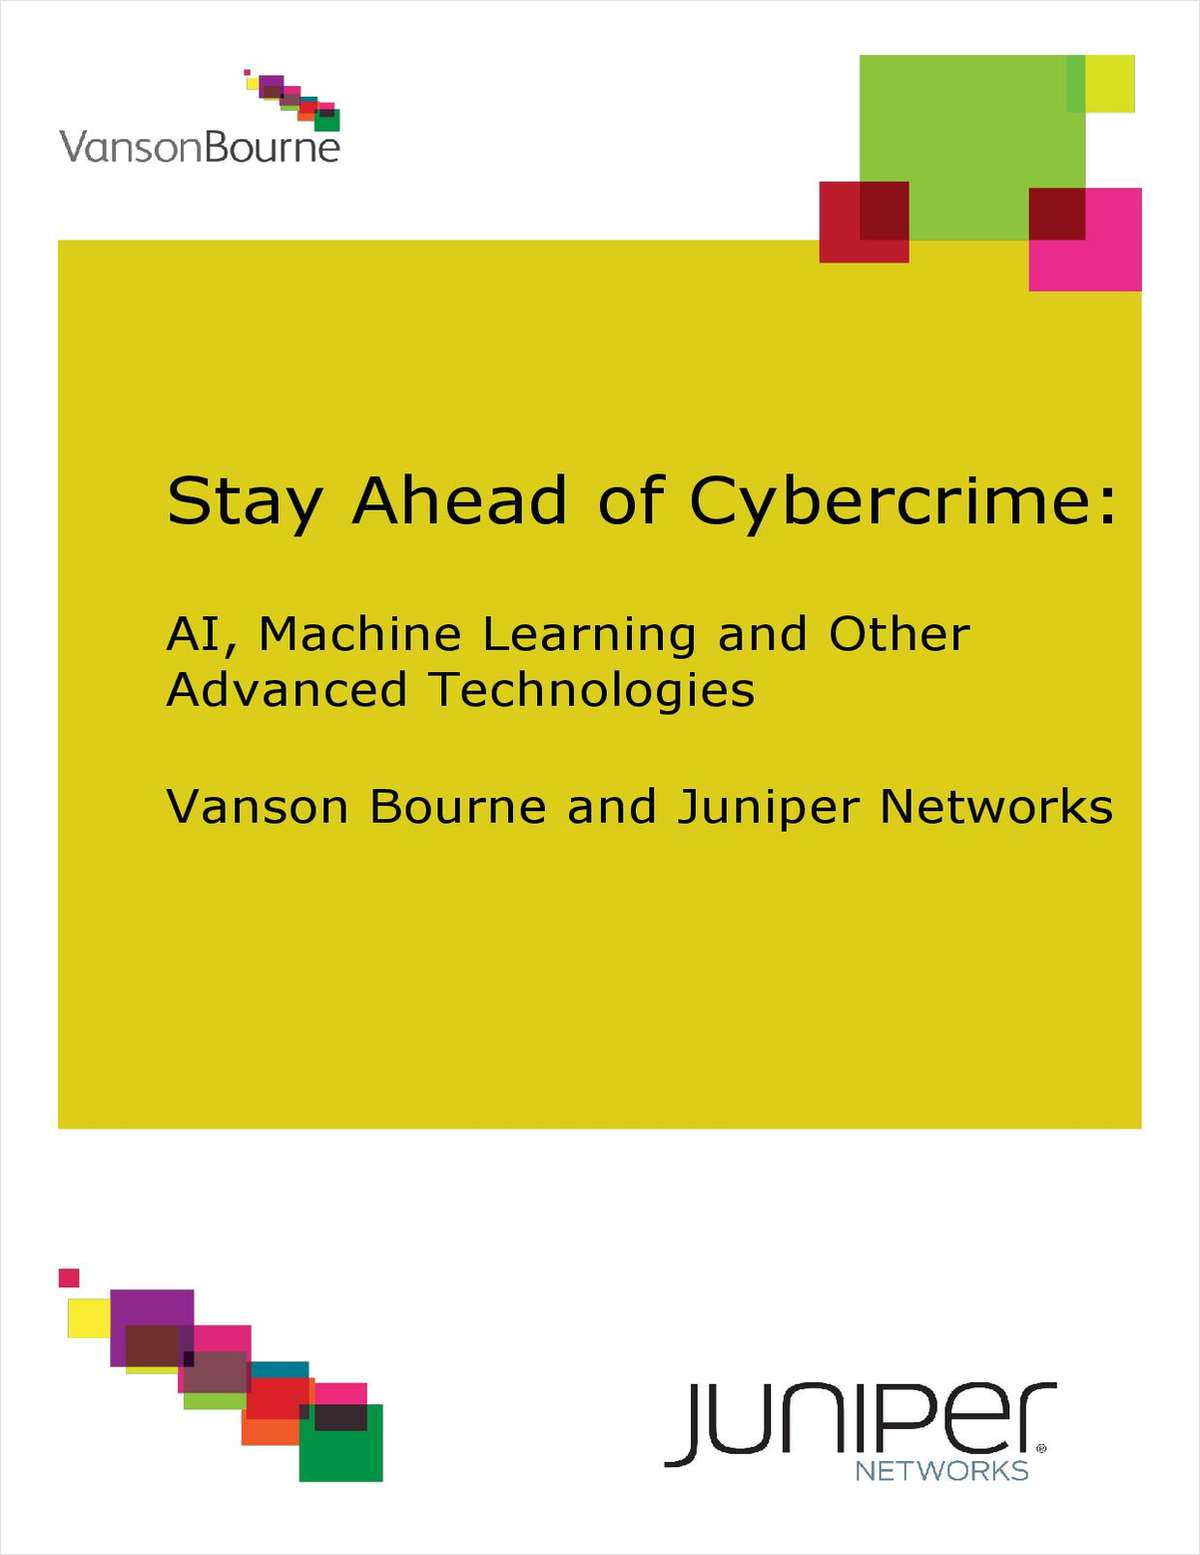 Using AI, Machine Learning and Other Advanced Technologies to Stay Ahead of Cybercrime (VansonBourne Research)